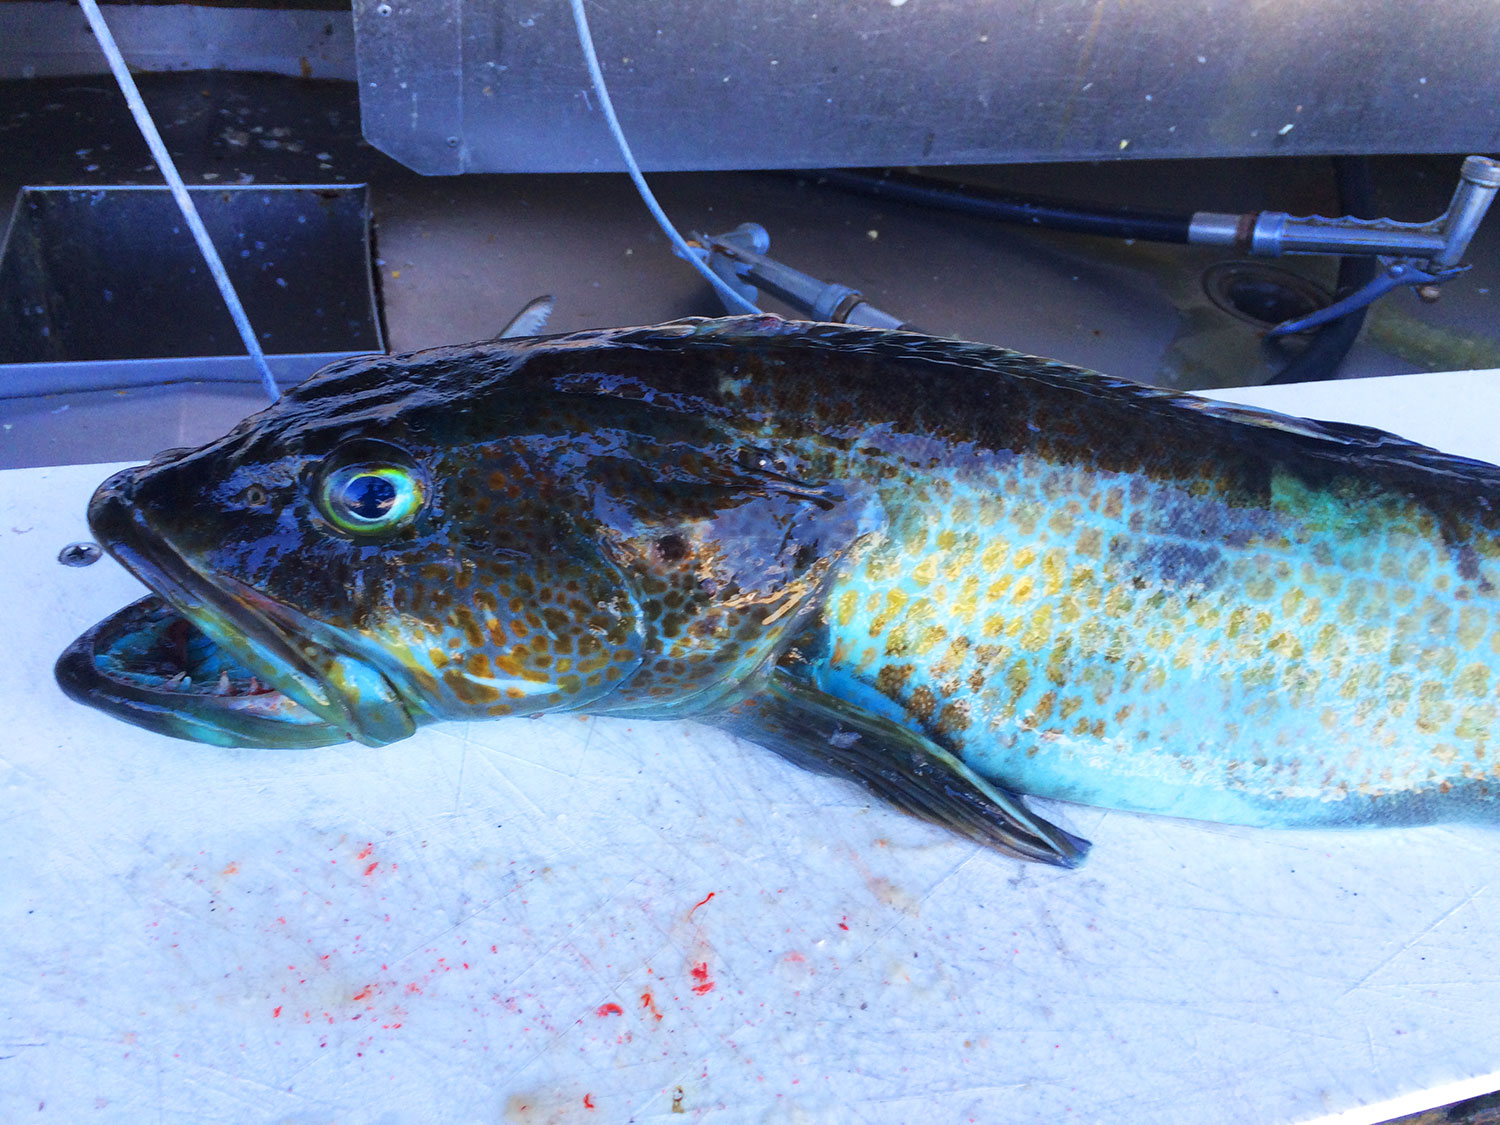 Regional Angling Advice: How to Catch Lingcod in California